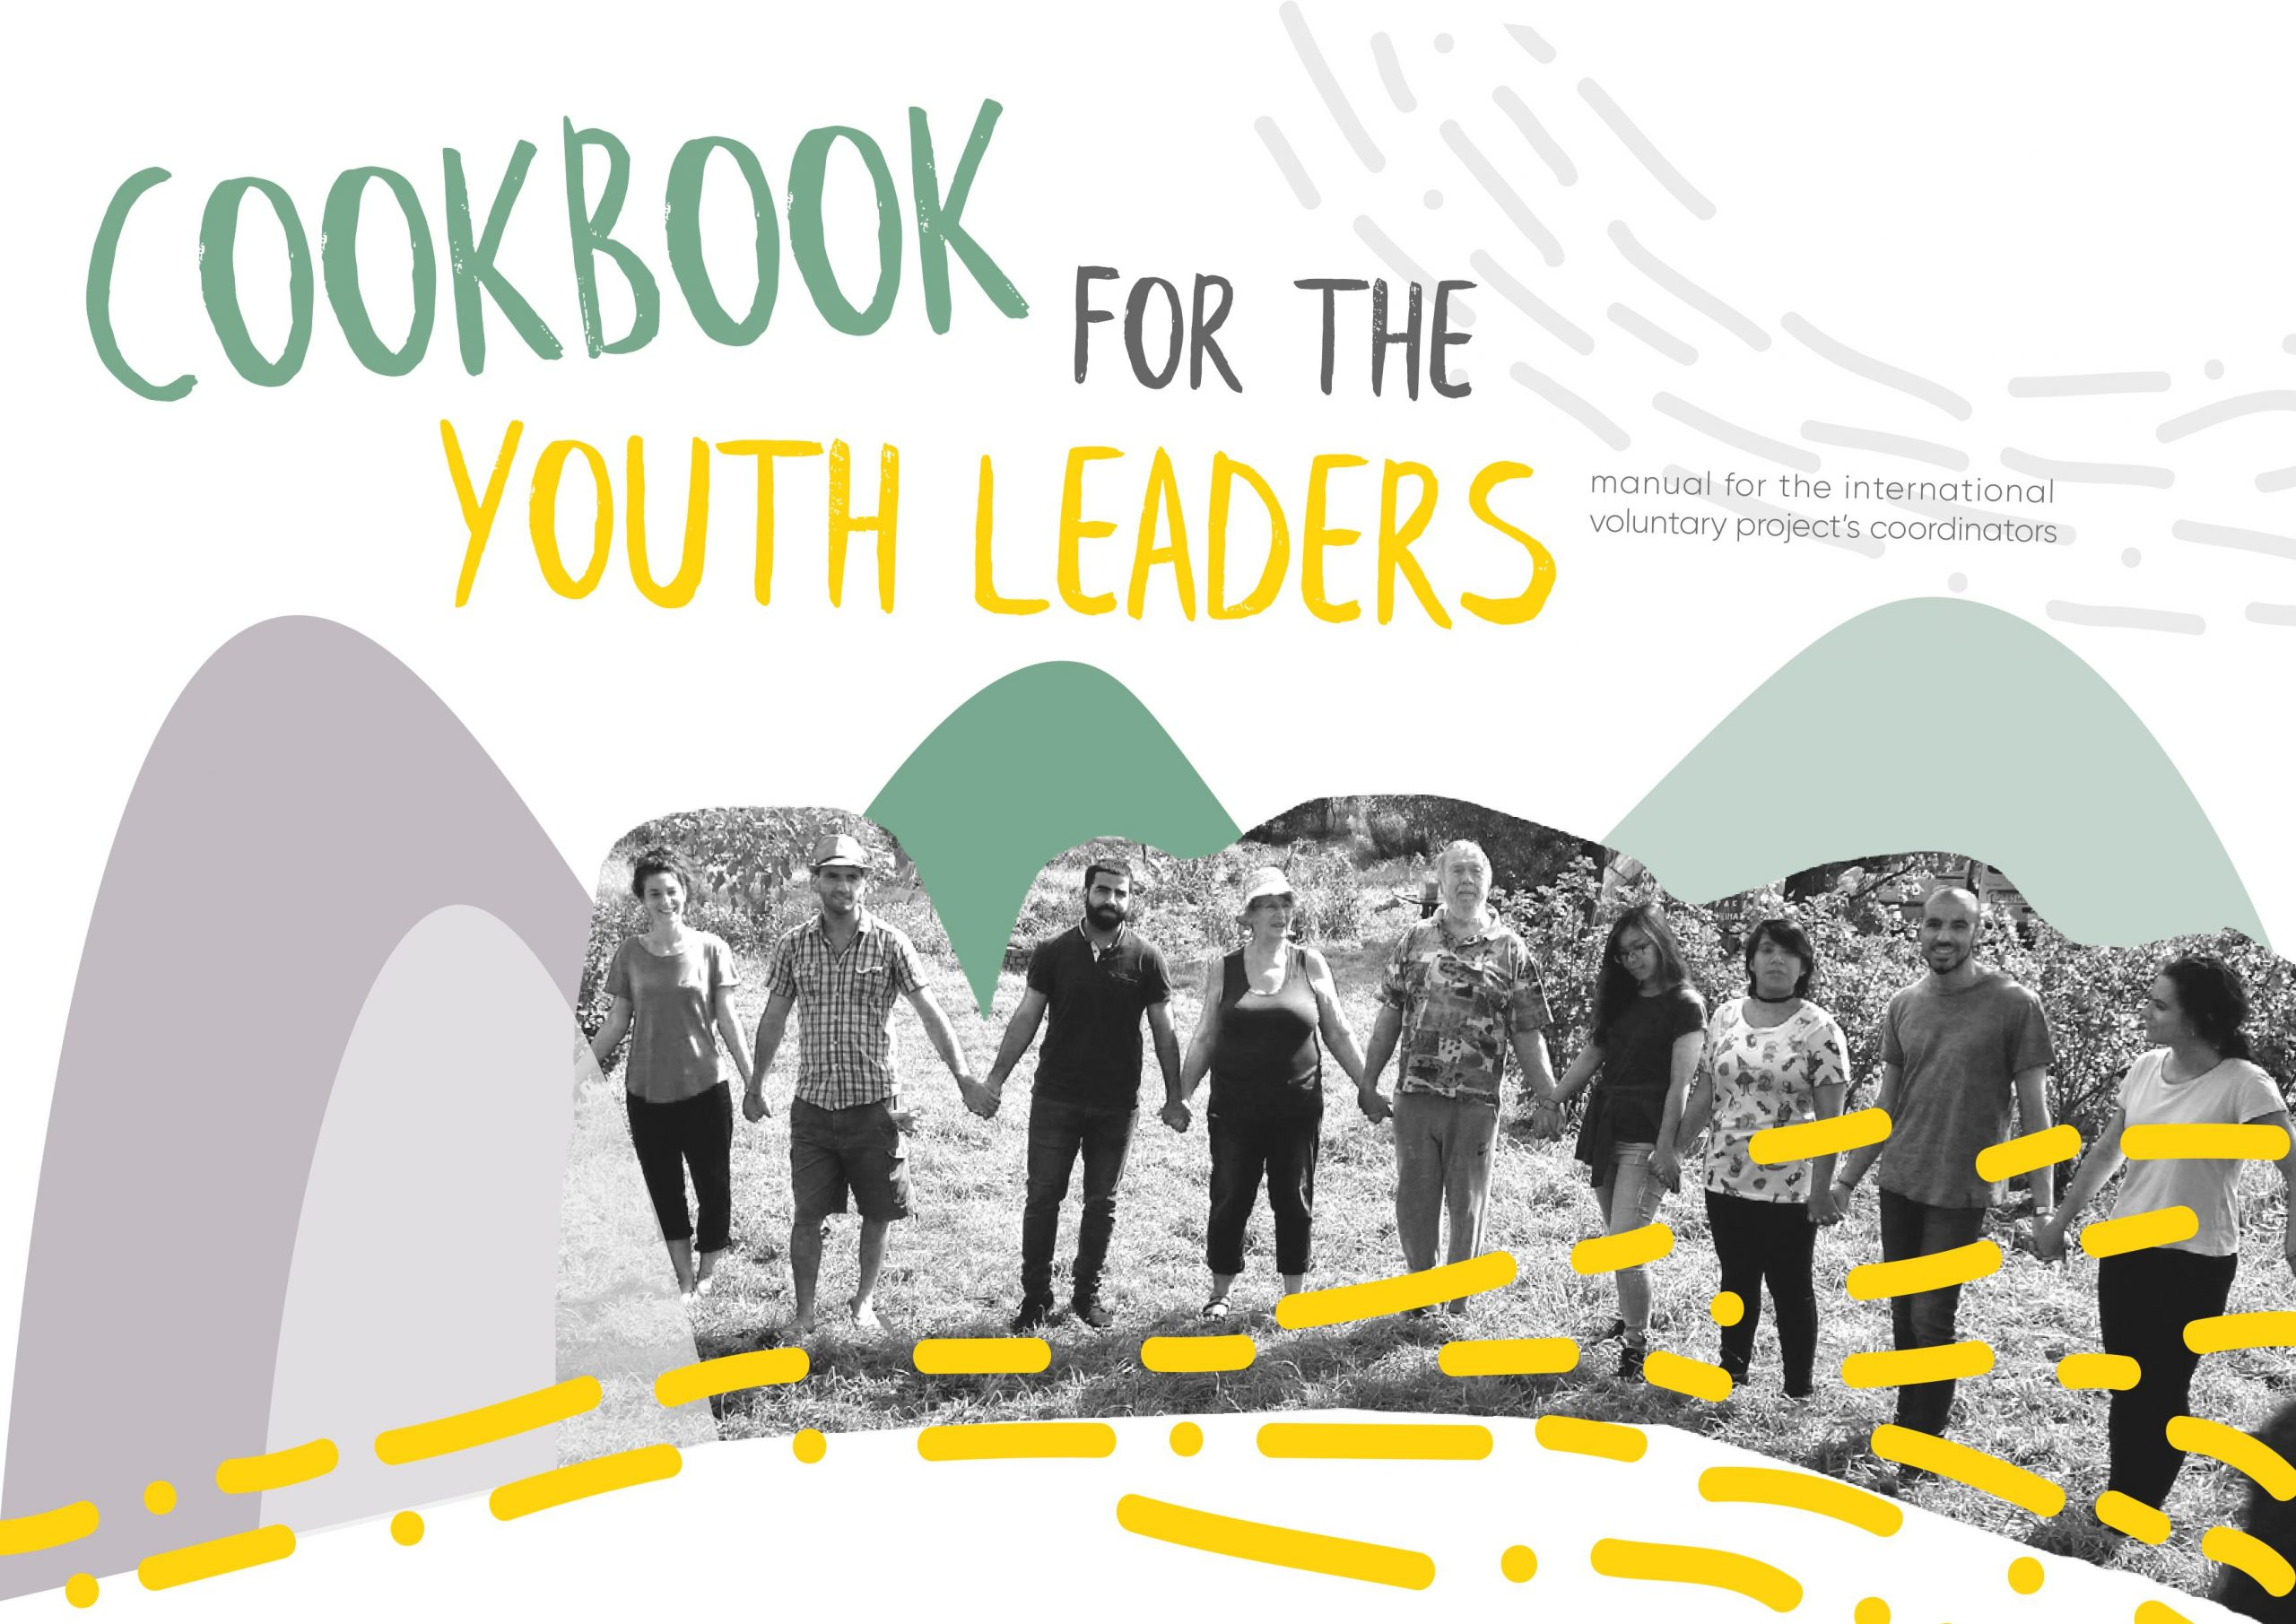 Cookbook for the youth leaders